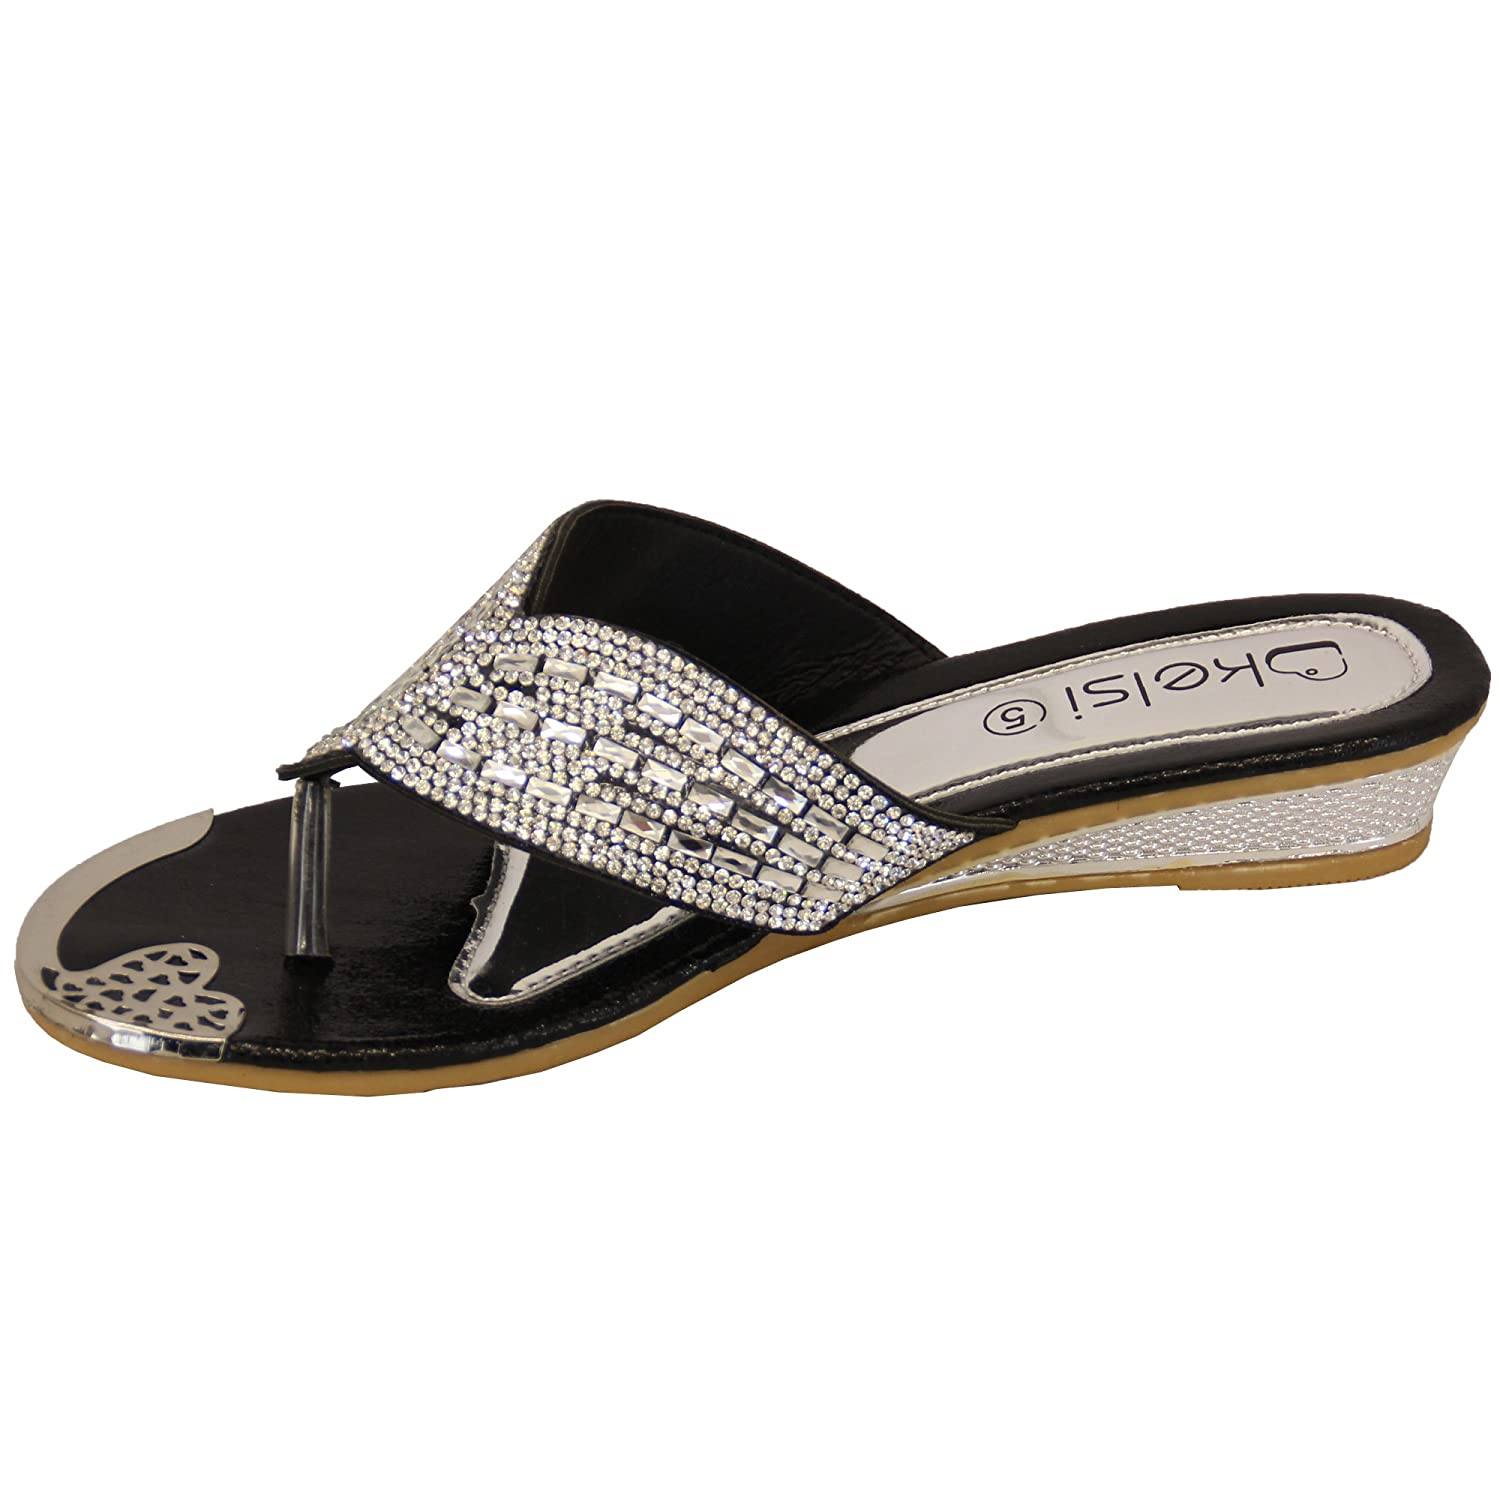 42c99b39ba08 Ladies  Kelsi Sandals 6838 Black UK 3  Amazon.co.uk  Shoes   Bags